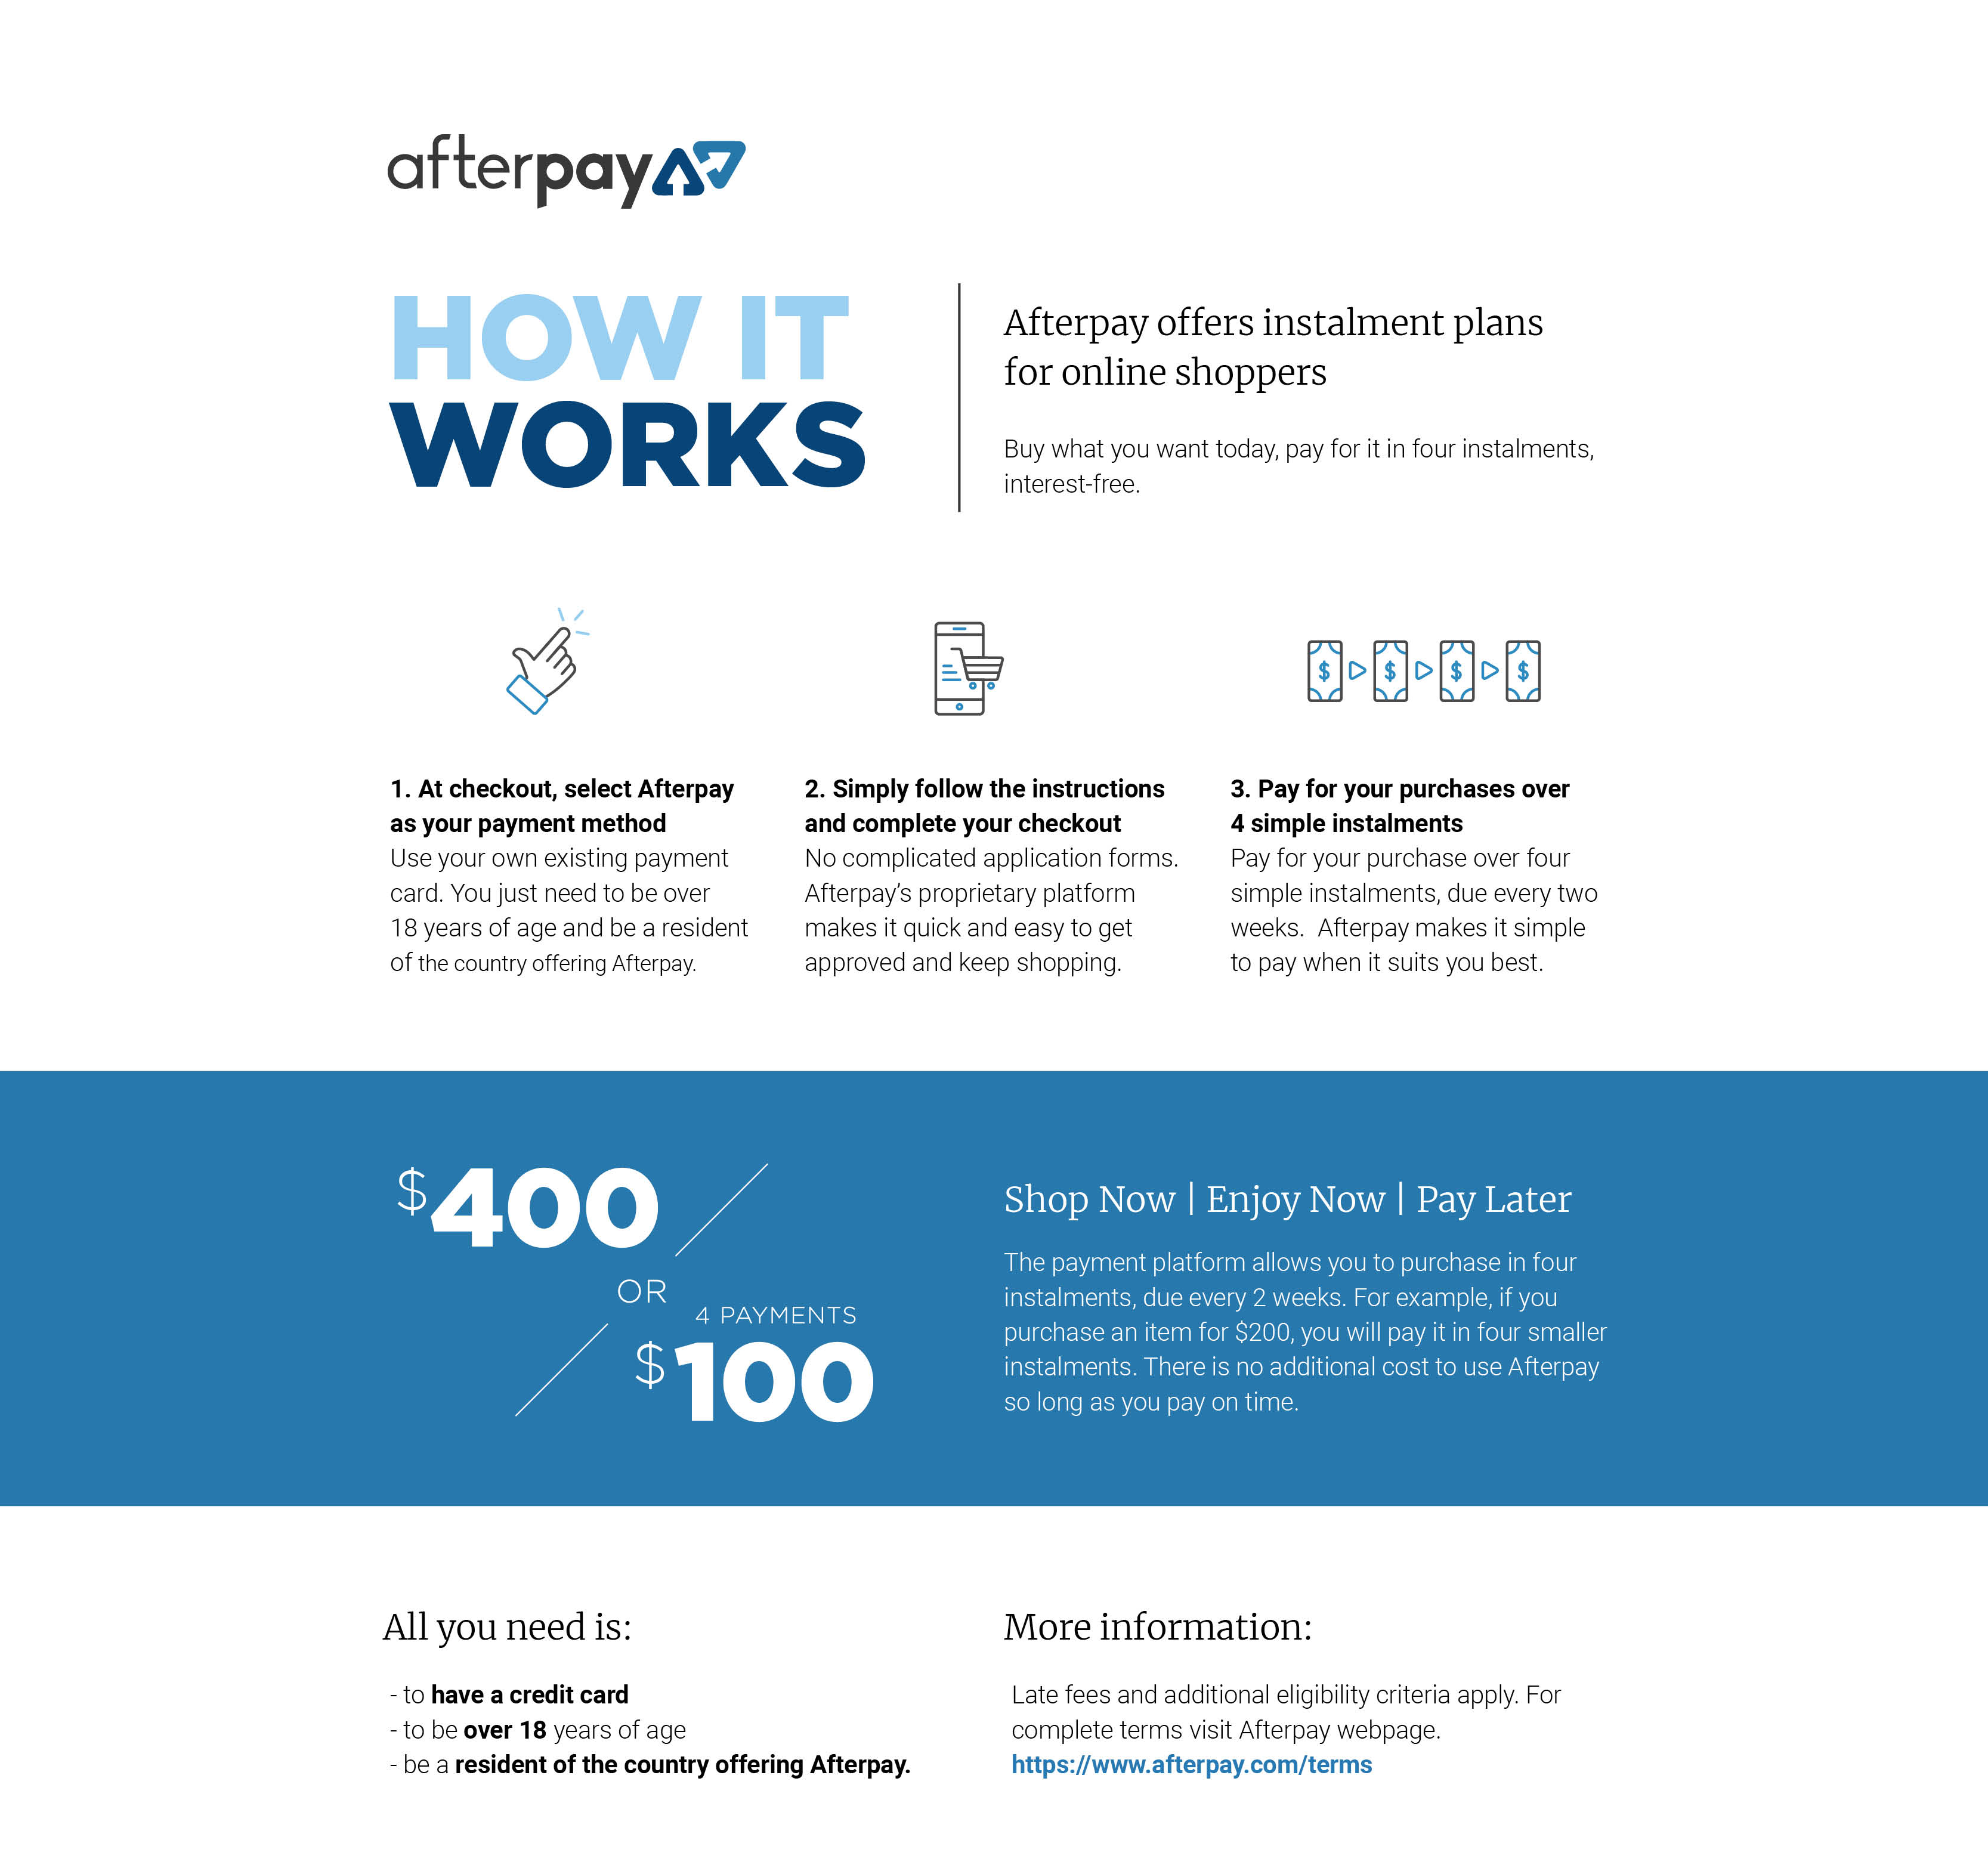 afterpay-how-it-works-landing-page-online.jpg